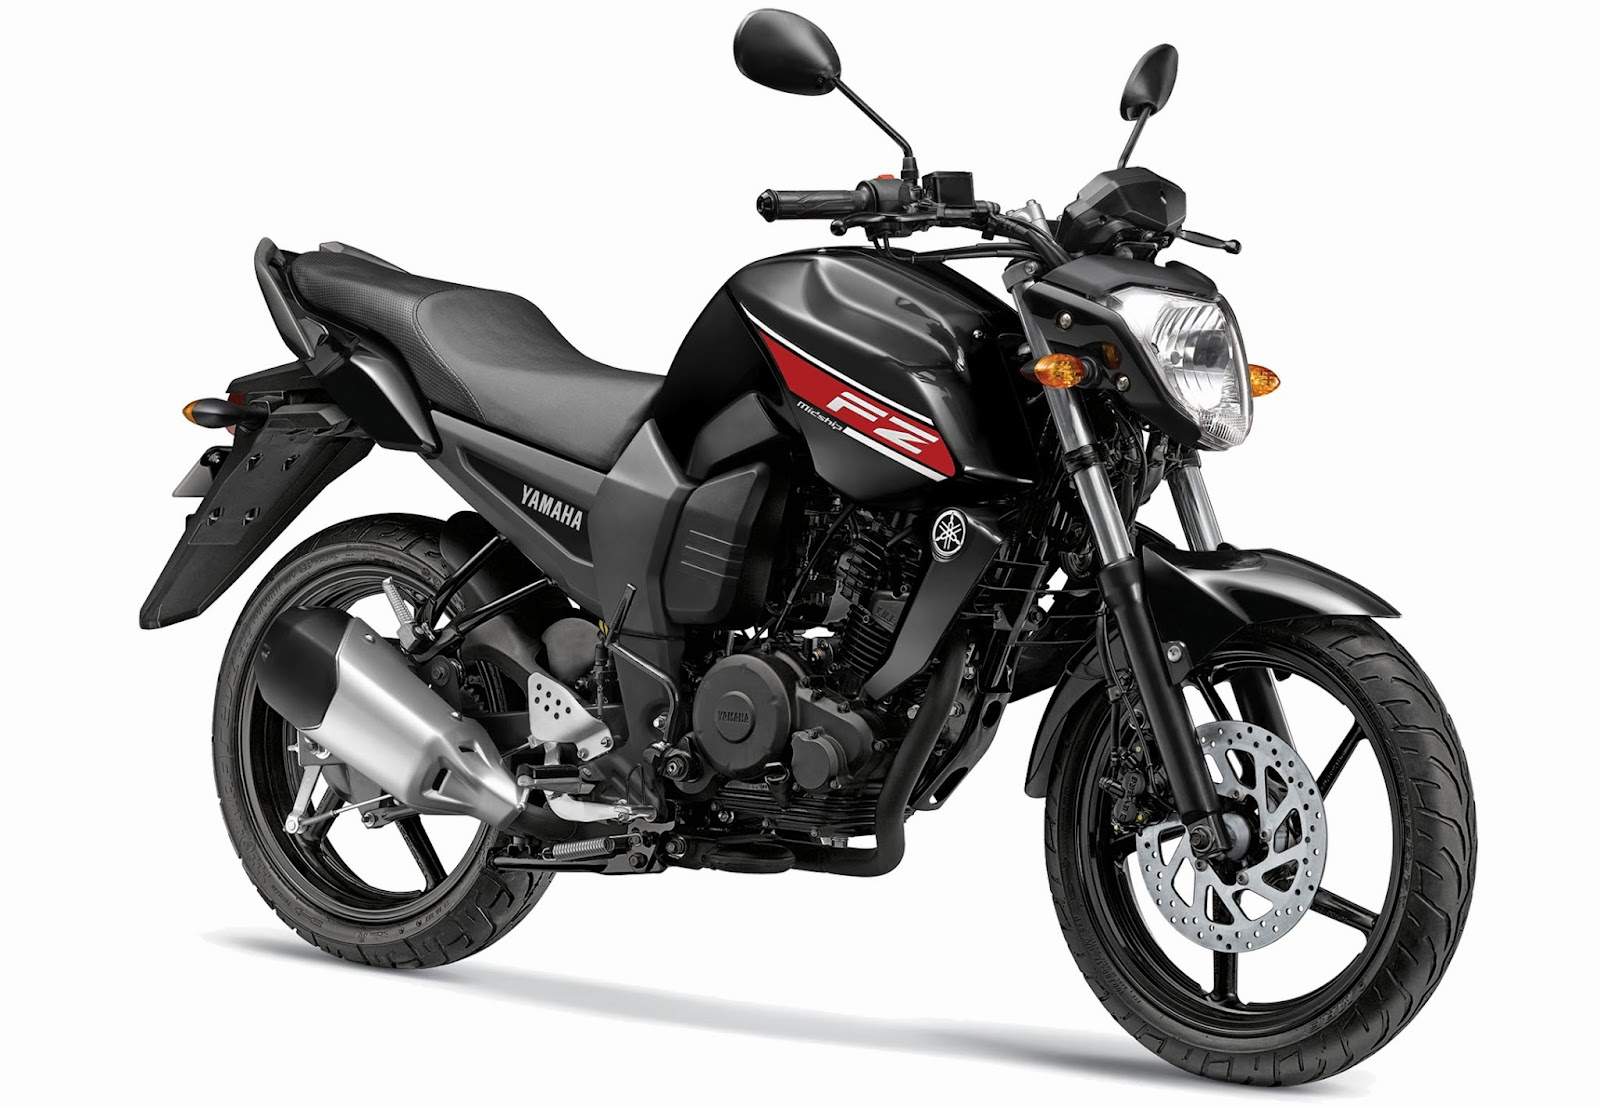 Yamaha FZ16 color absolute black